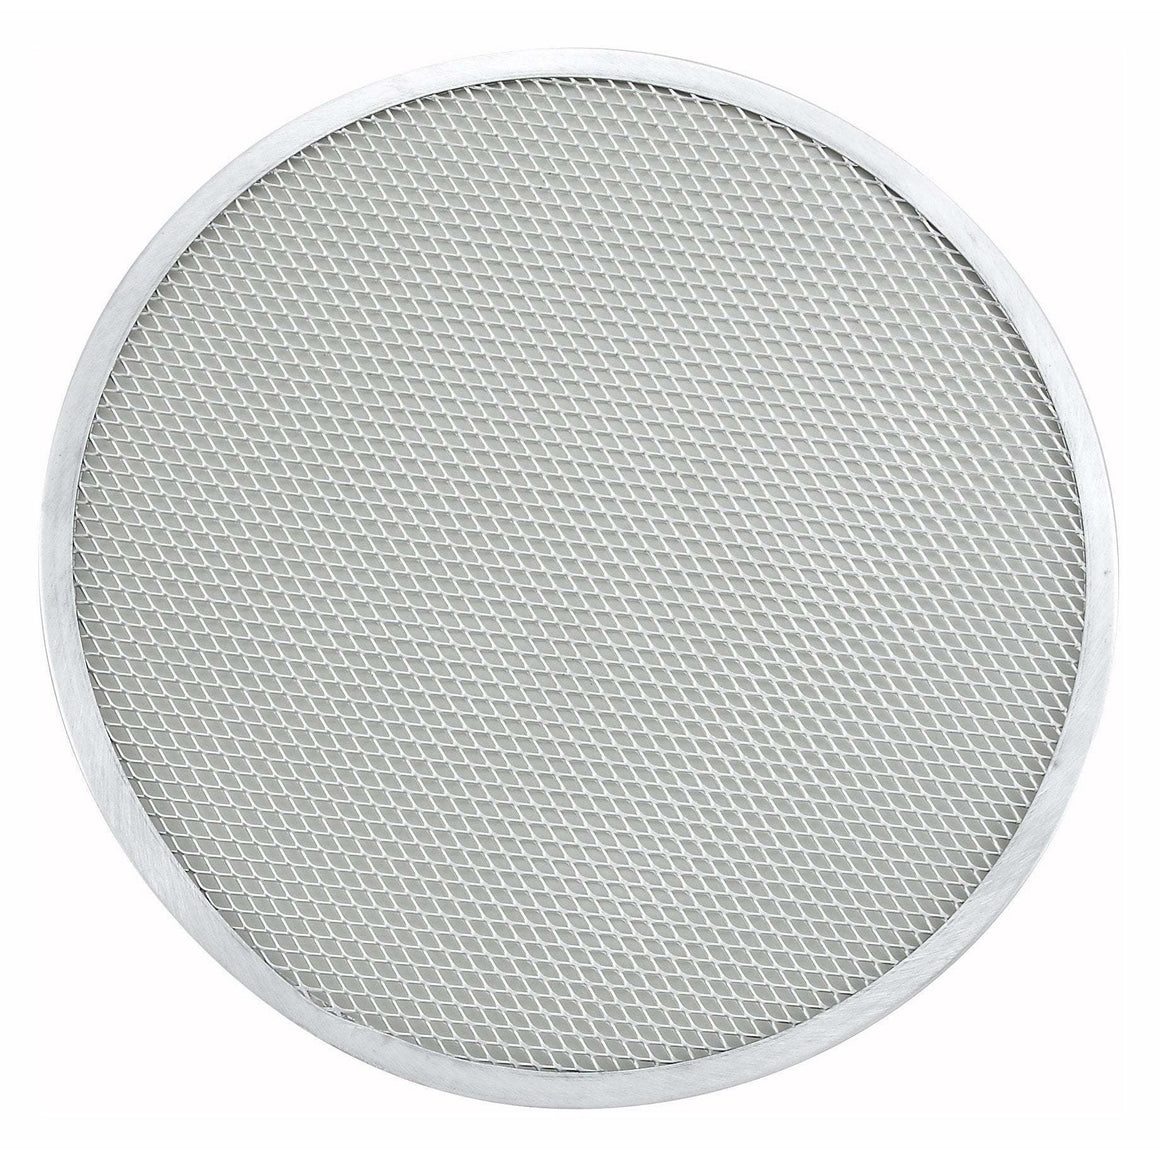 "Winco - APZS-12 - 12"" Seamless Pizza Screen, Aluminum - Pizza Supplies"